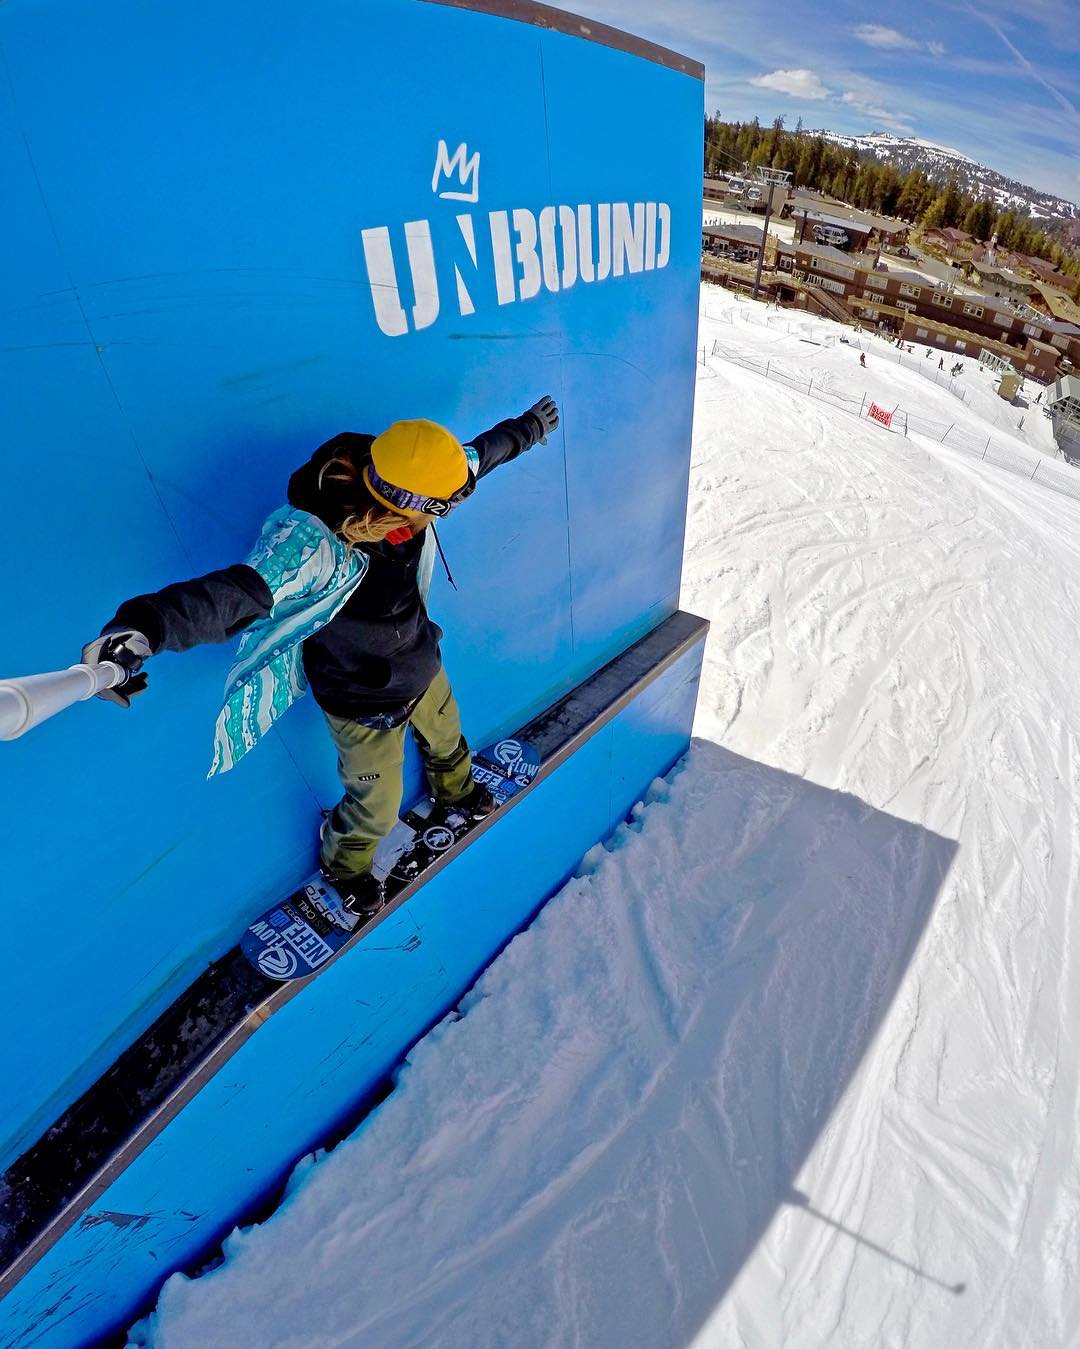 @timhumphreys winding down the season with a backside 50-50 at @mammothunbound. GoPro HERO4 | GoPole Reach #gopro #gopole #gopolereach #snowboarding #mammothmountain @mammothmountain